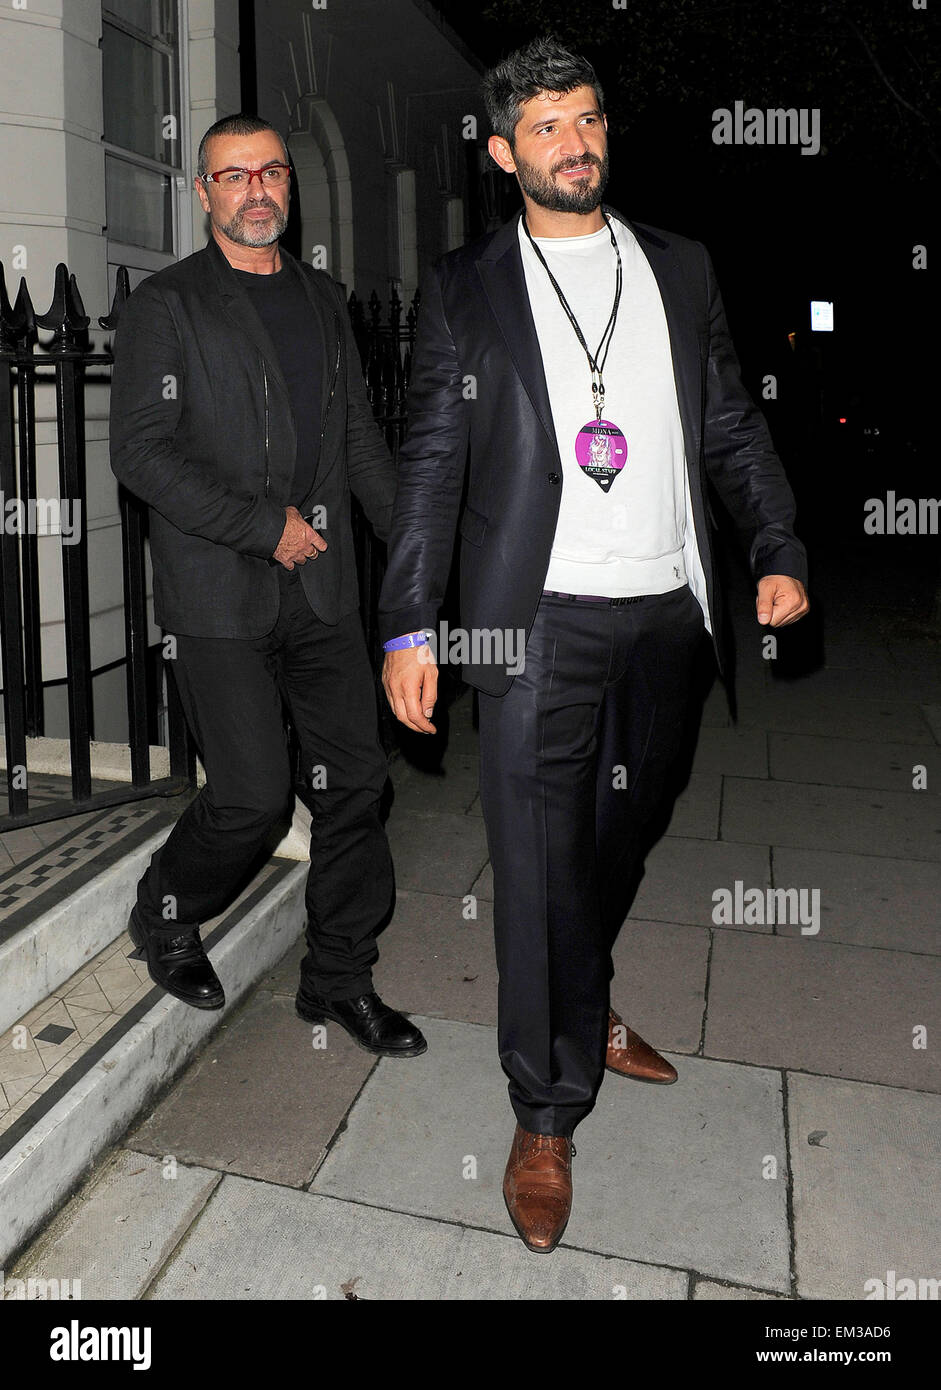 18july2012-london-george-michael-and-his